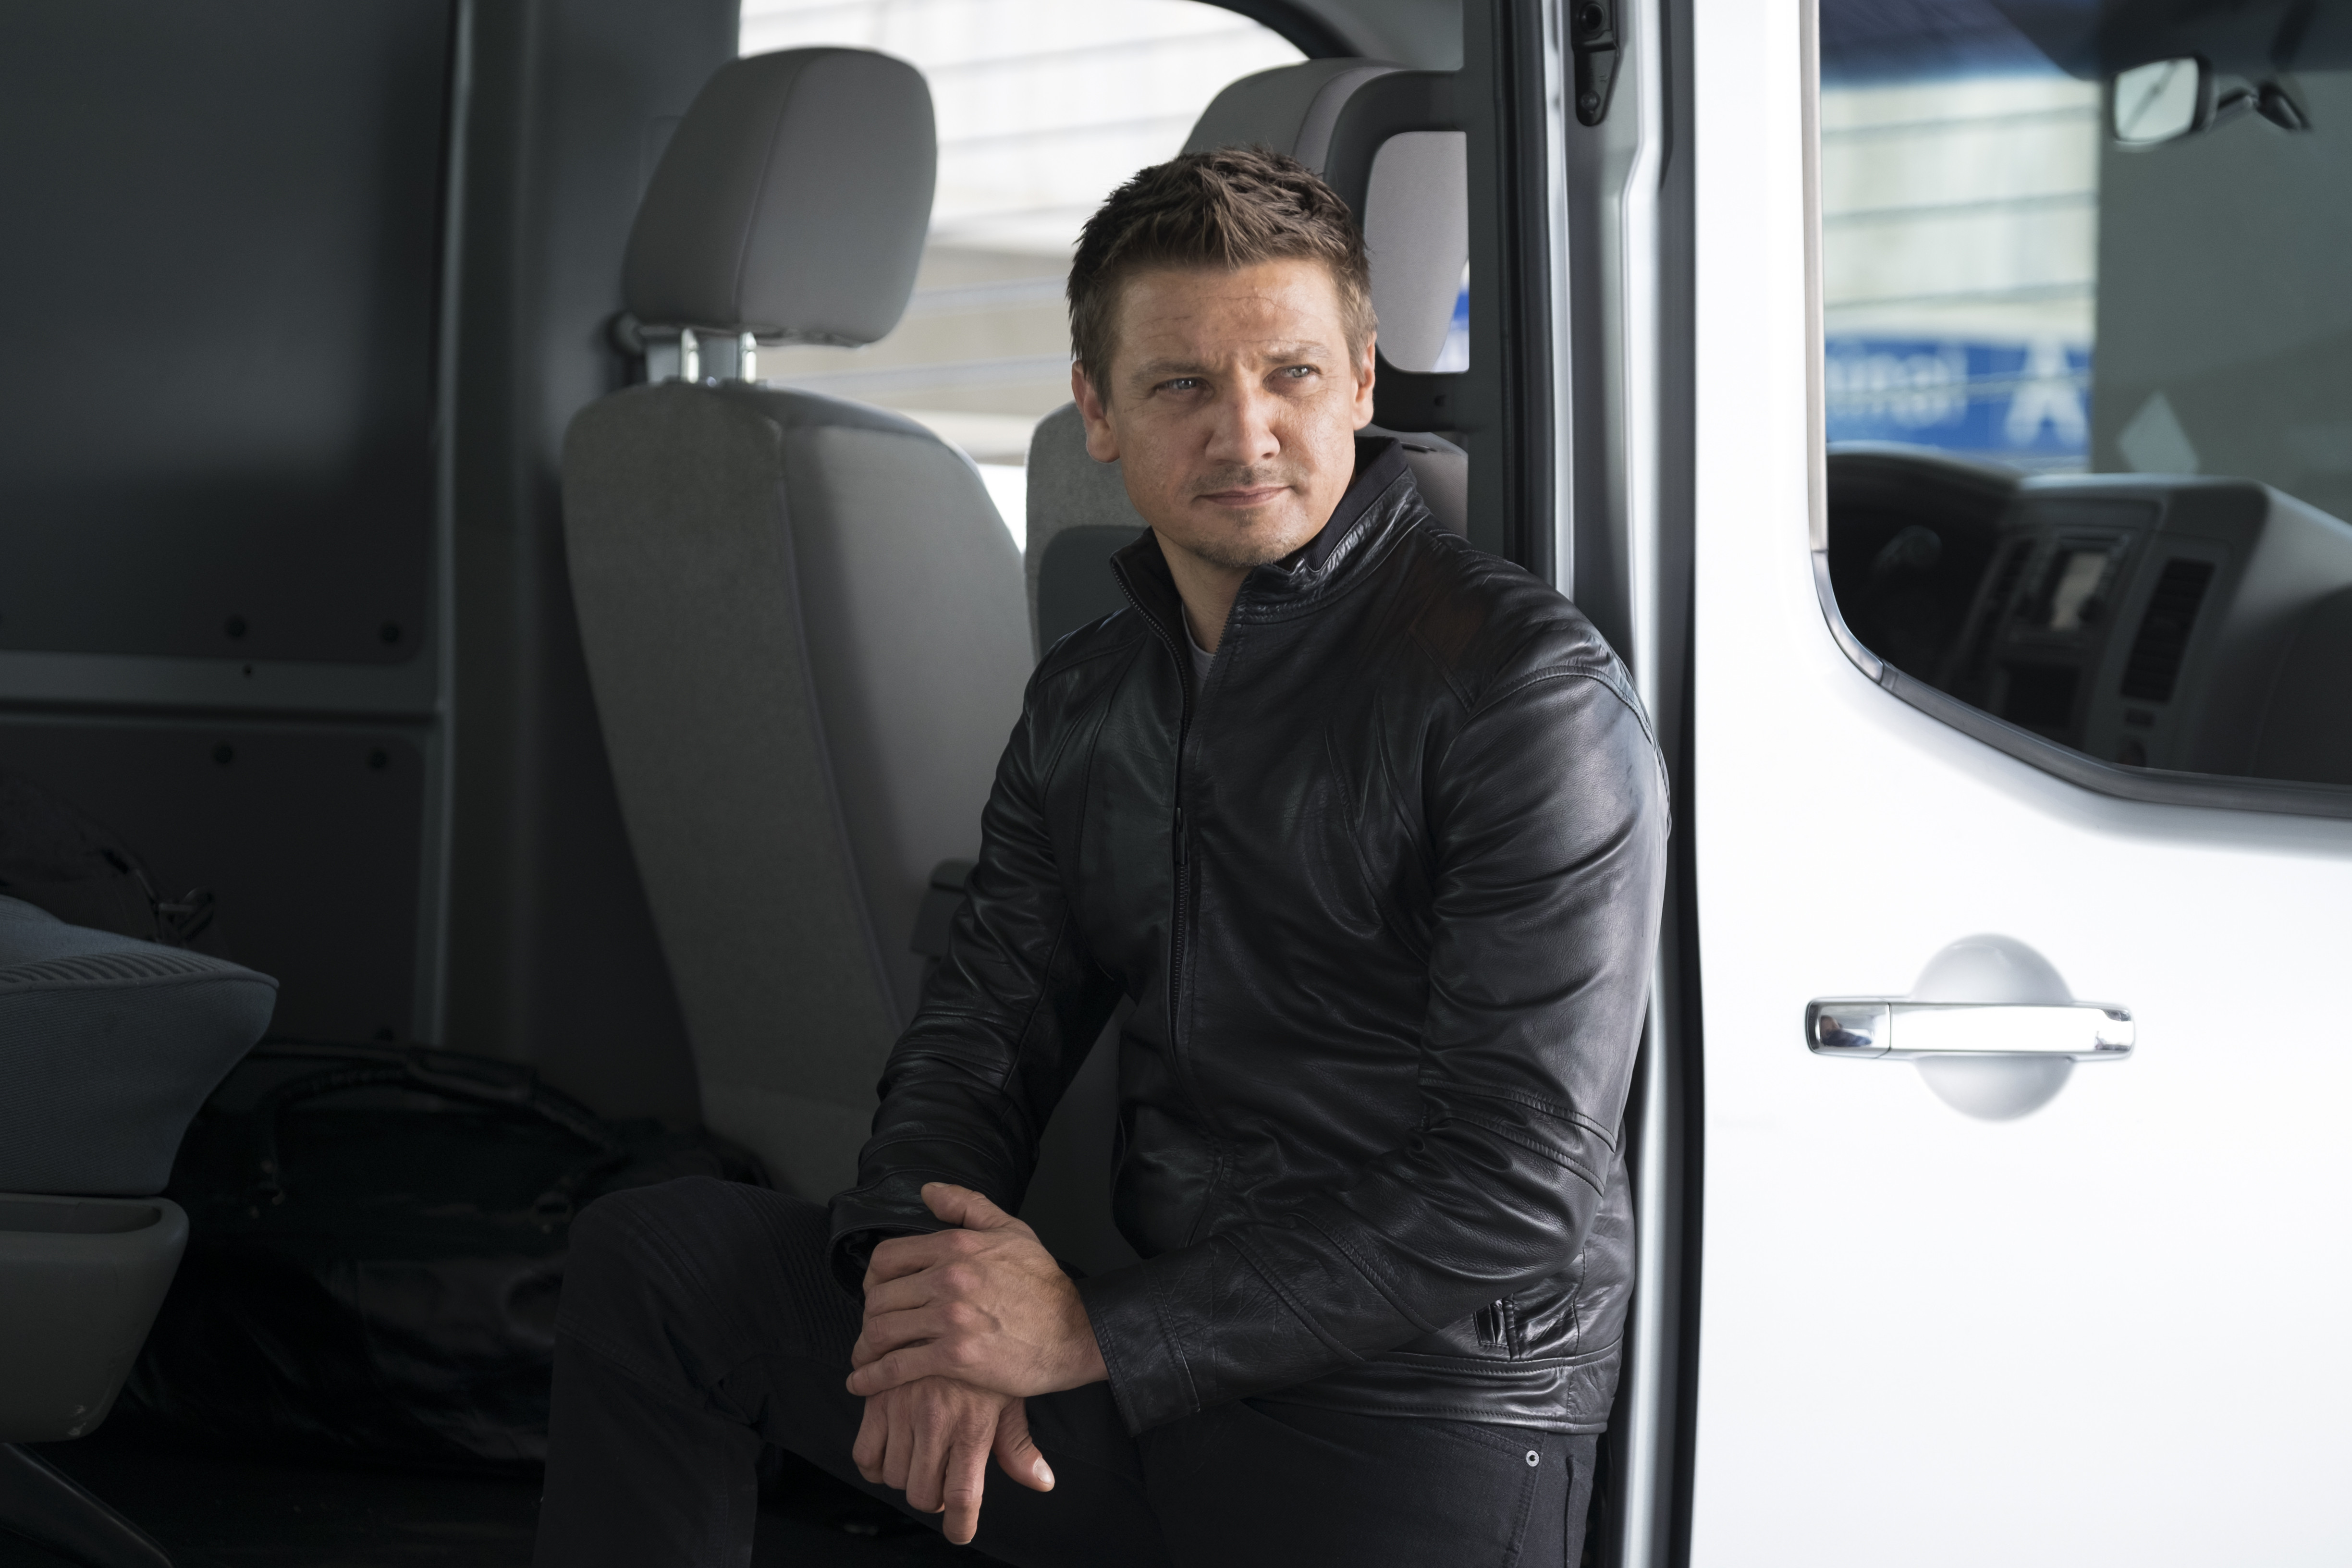 4896x3264 - Jeremy Renner Wallpapers 24